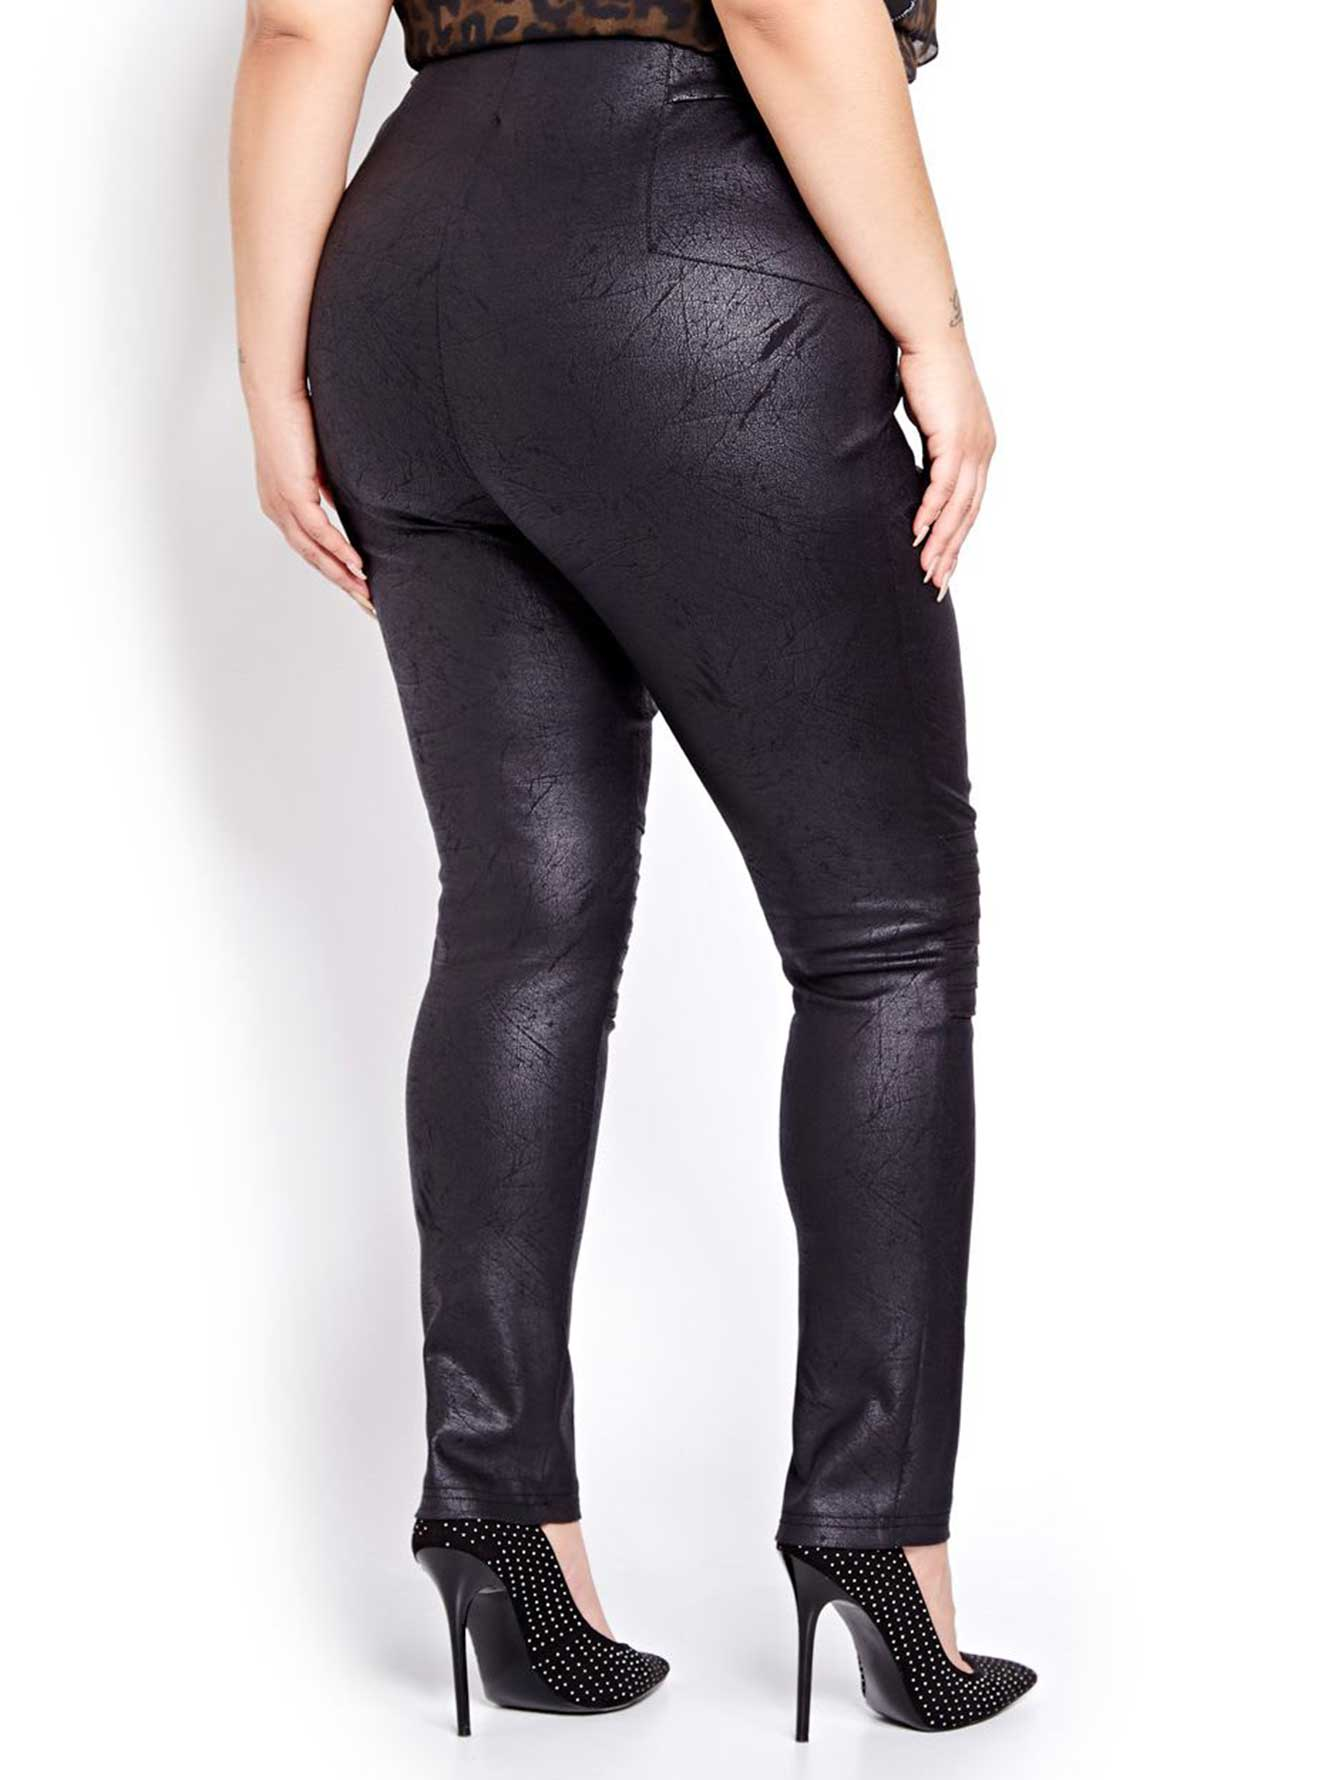 Nadia Aboulhosn Textured Legging for L&L